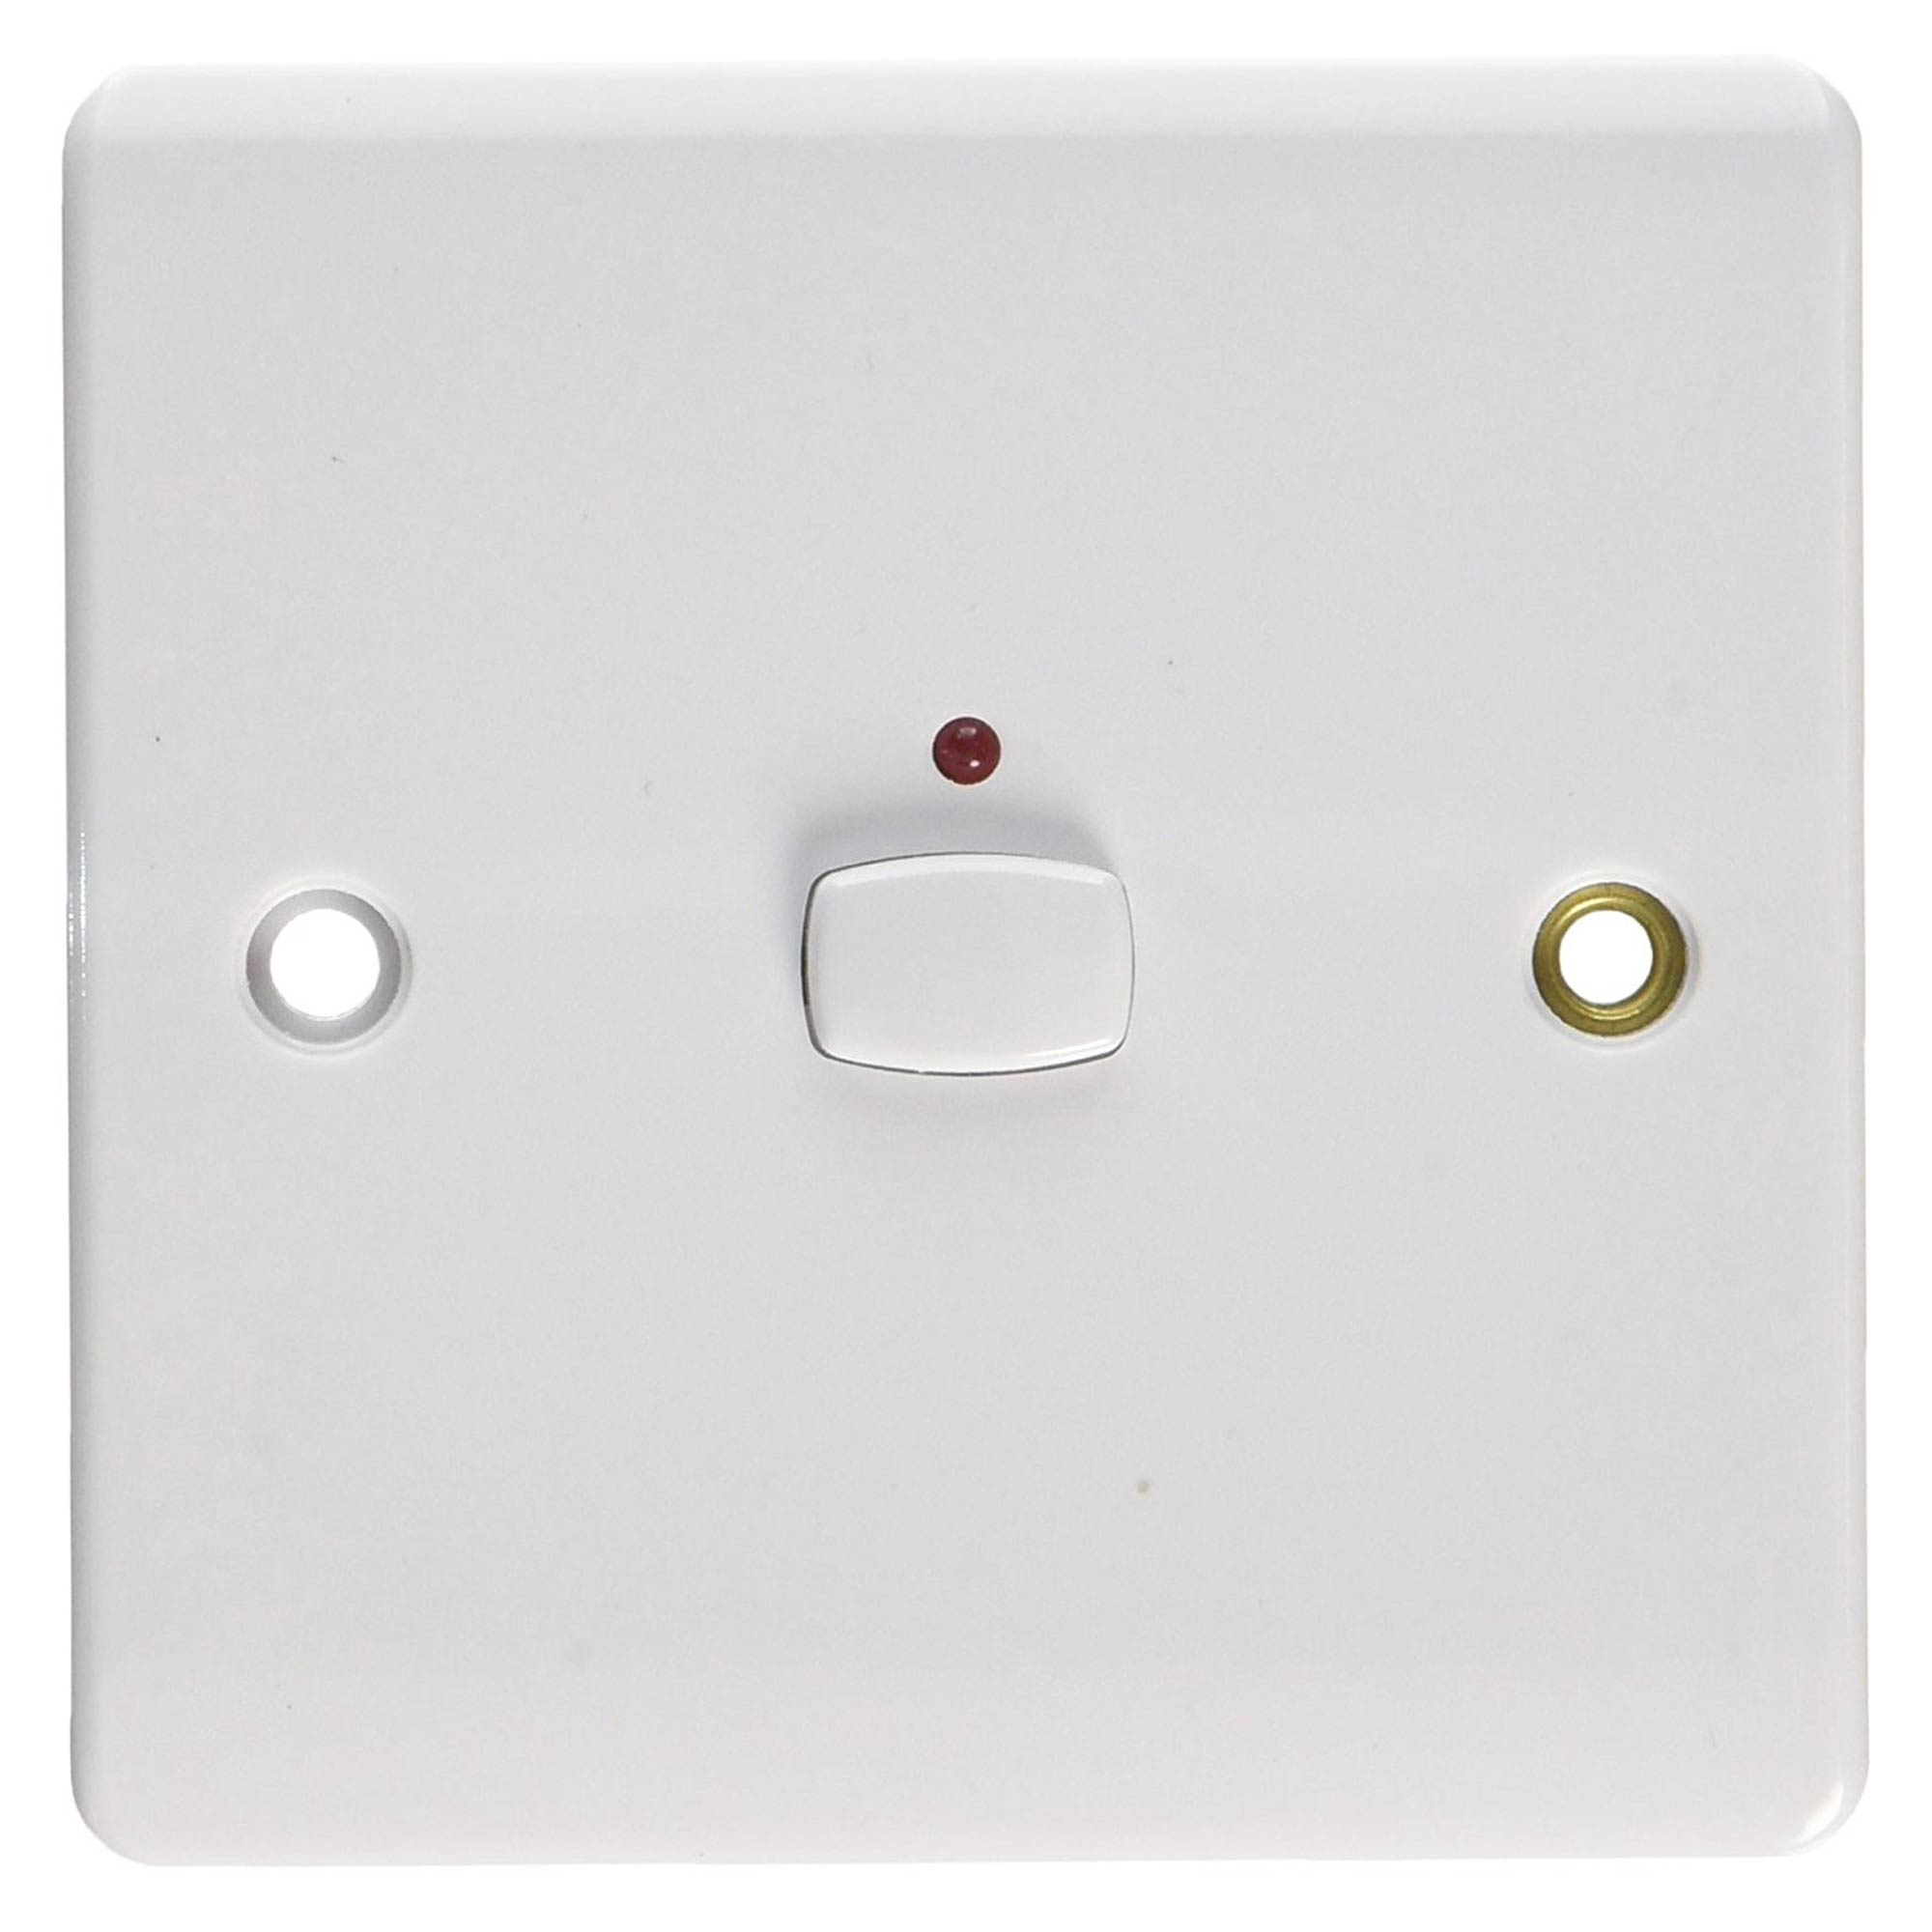 Light Switch Style Description Three Switches With Exposed Wiringjpg Energenie Miho Mihome White 2000x2000